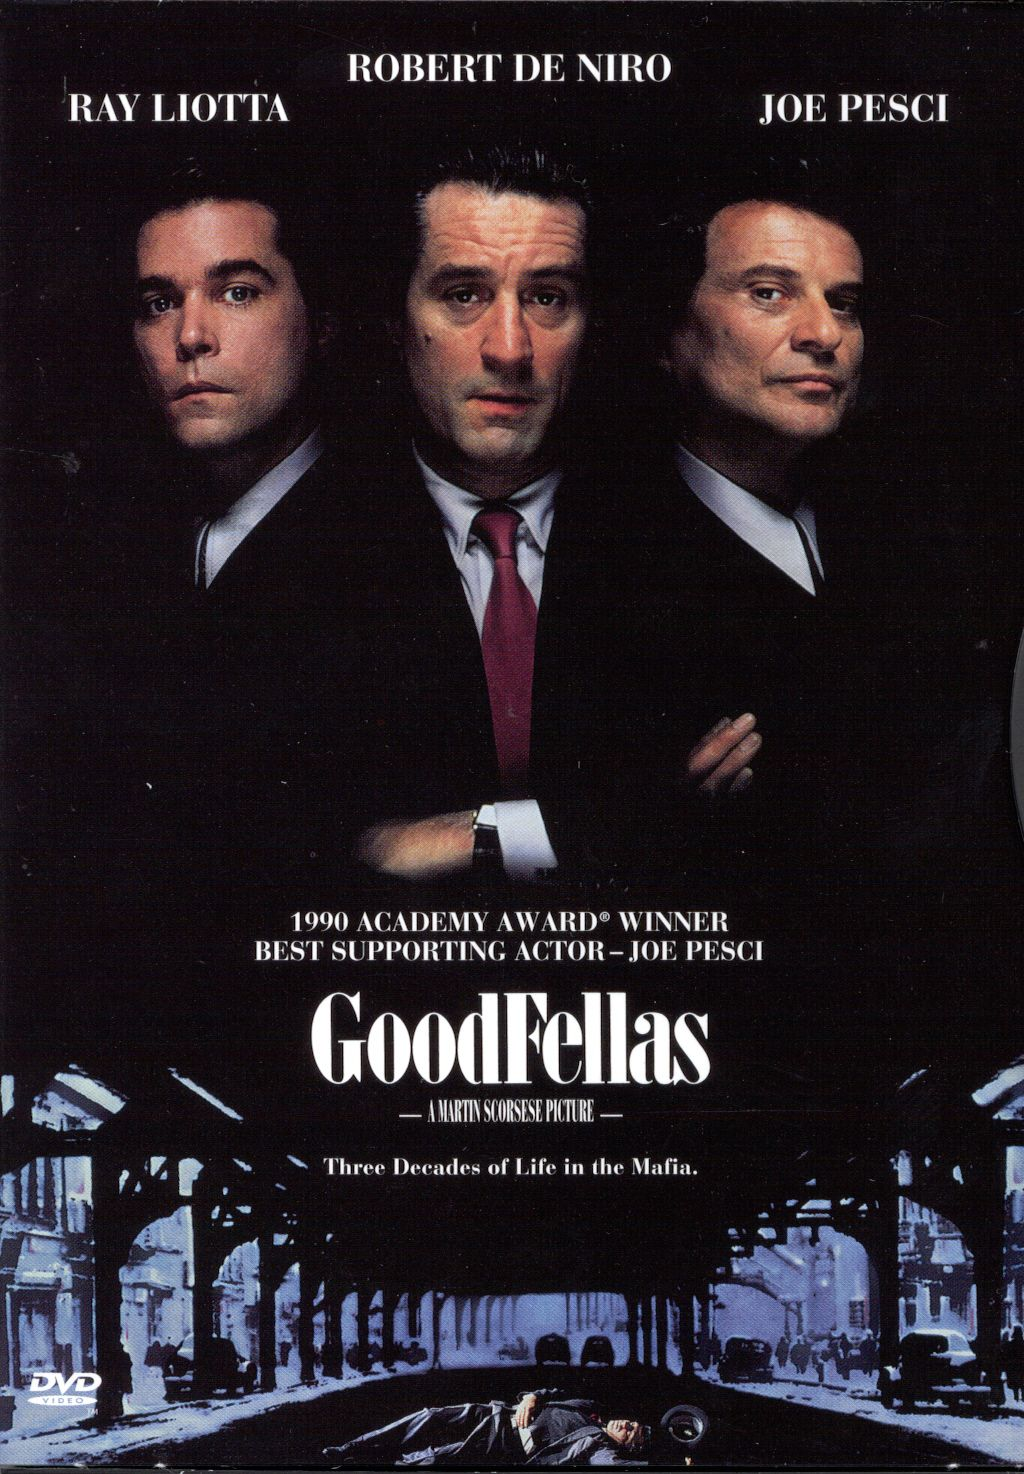 Image result for Goodfellas posters